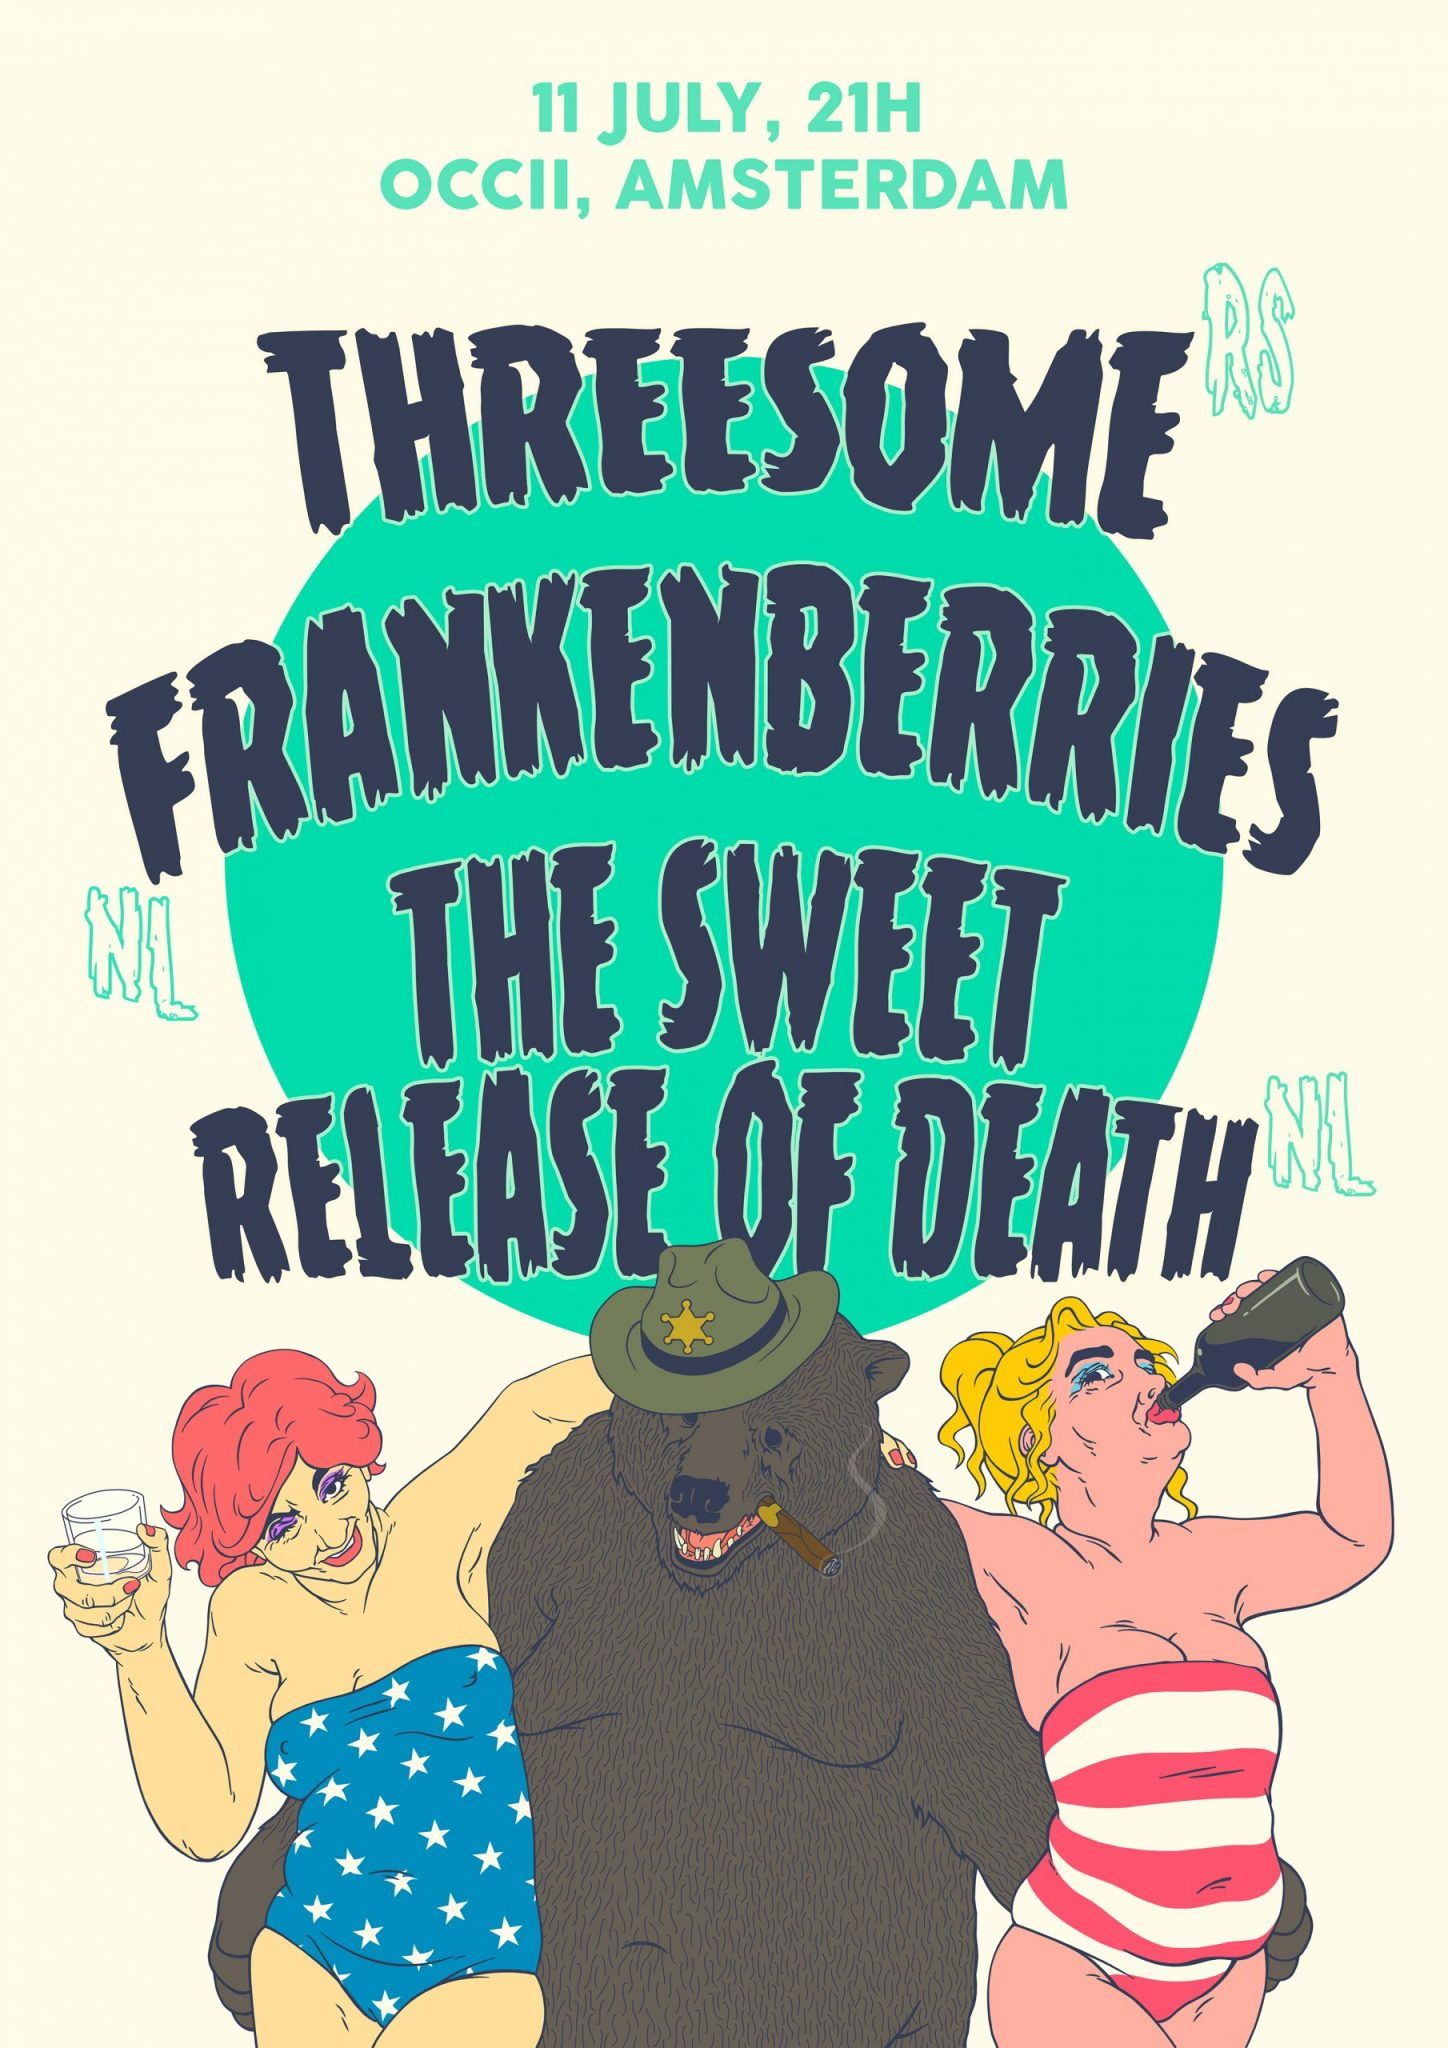 THREESOME (rs) + FRANKENBERRIES + THE SWEET RELEASE OF DEATH